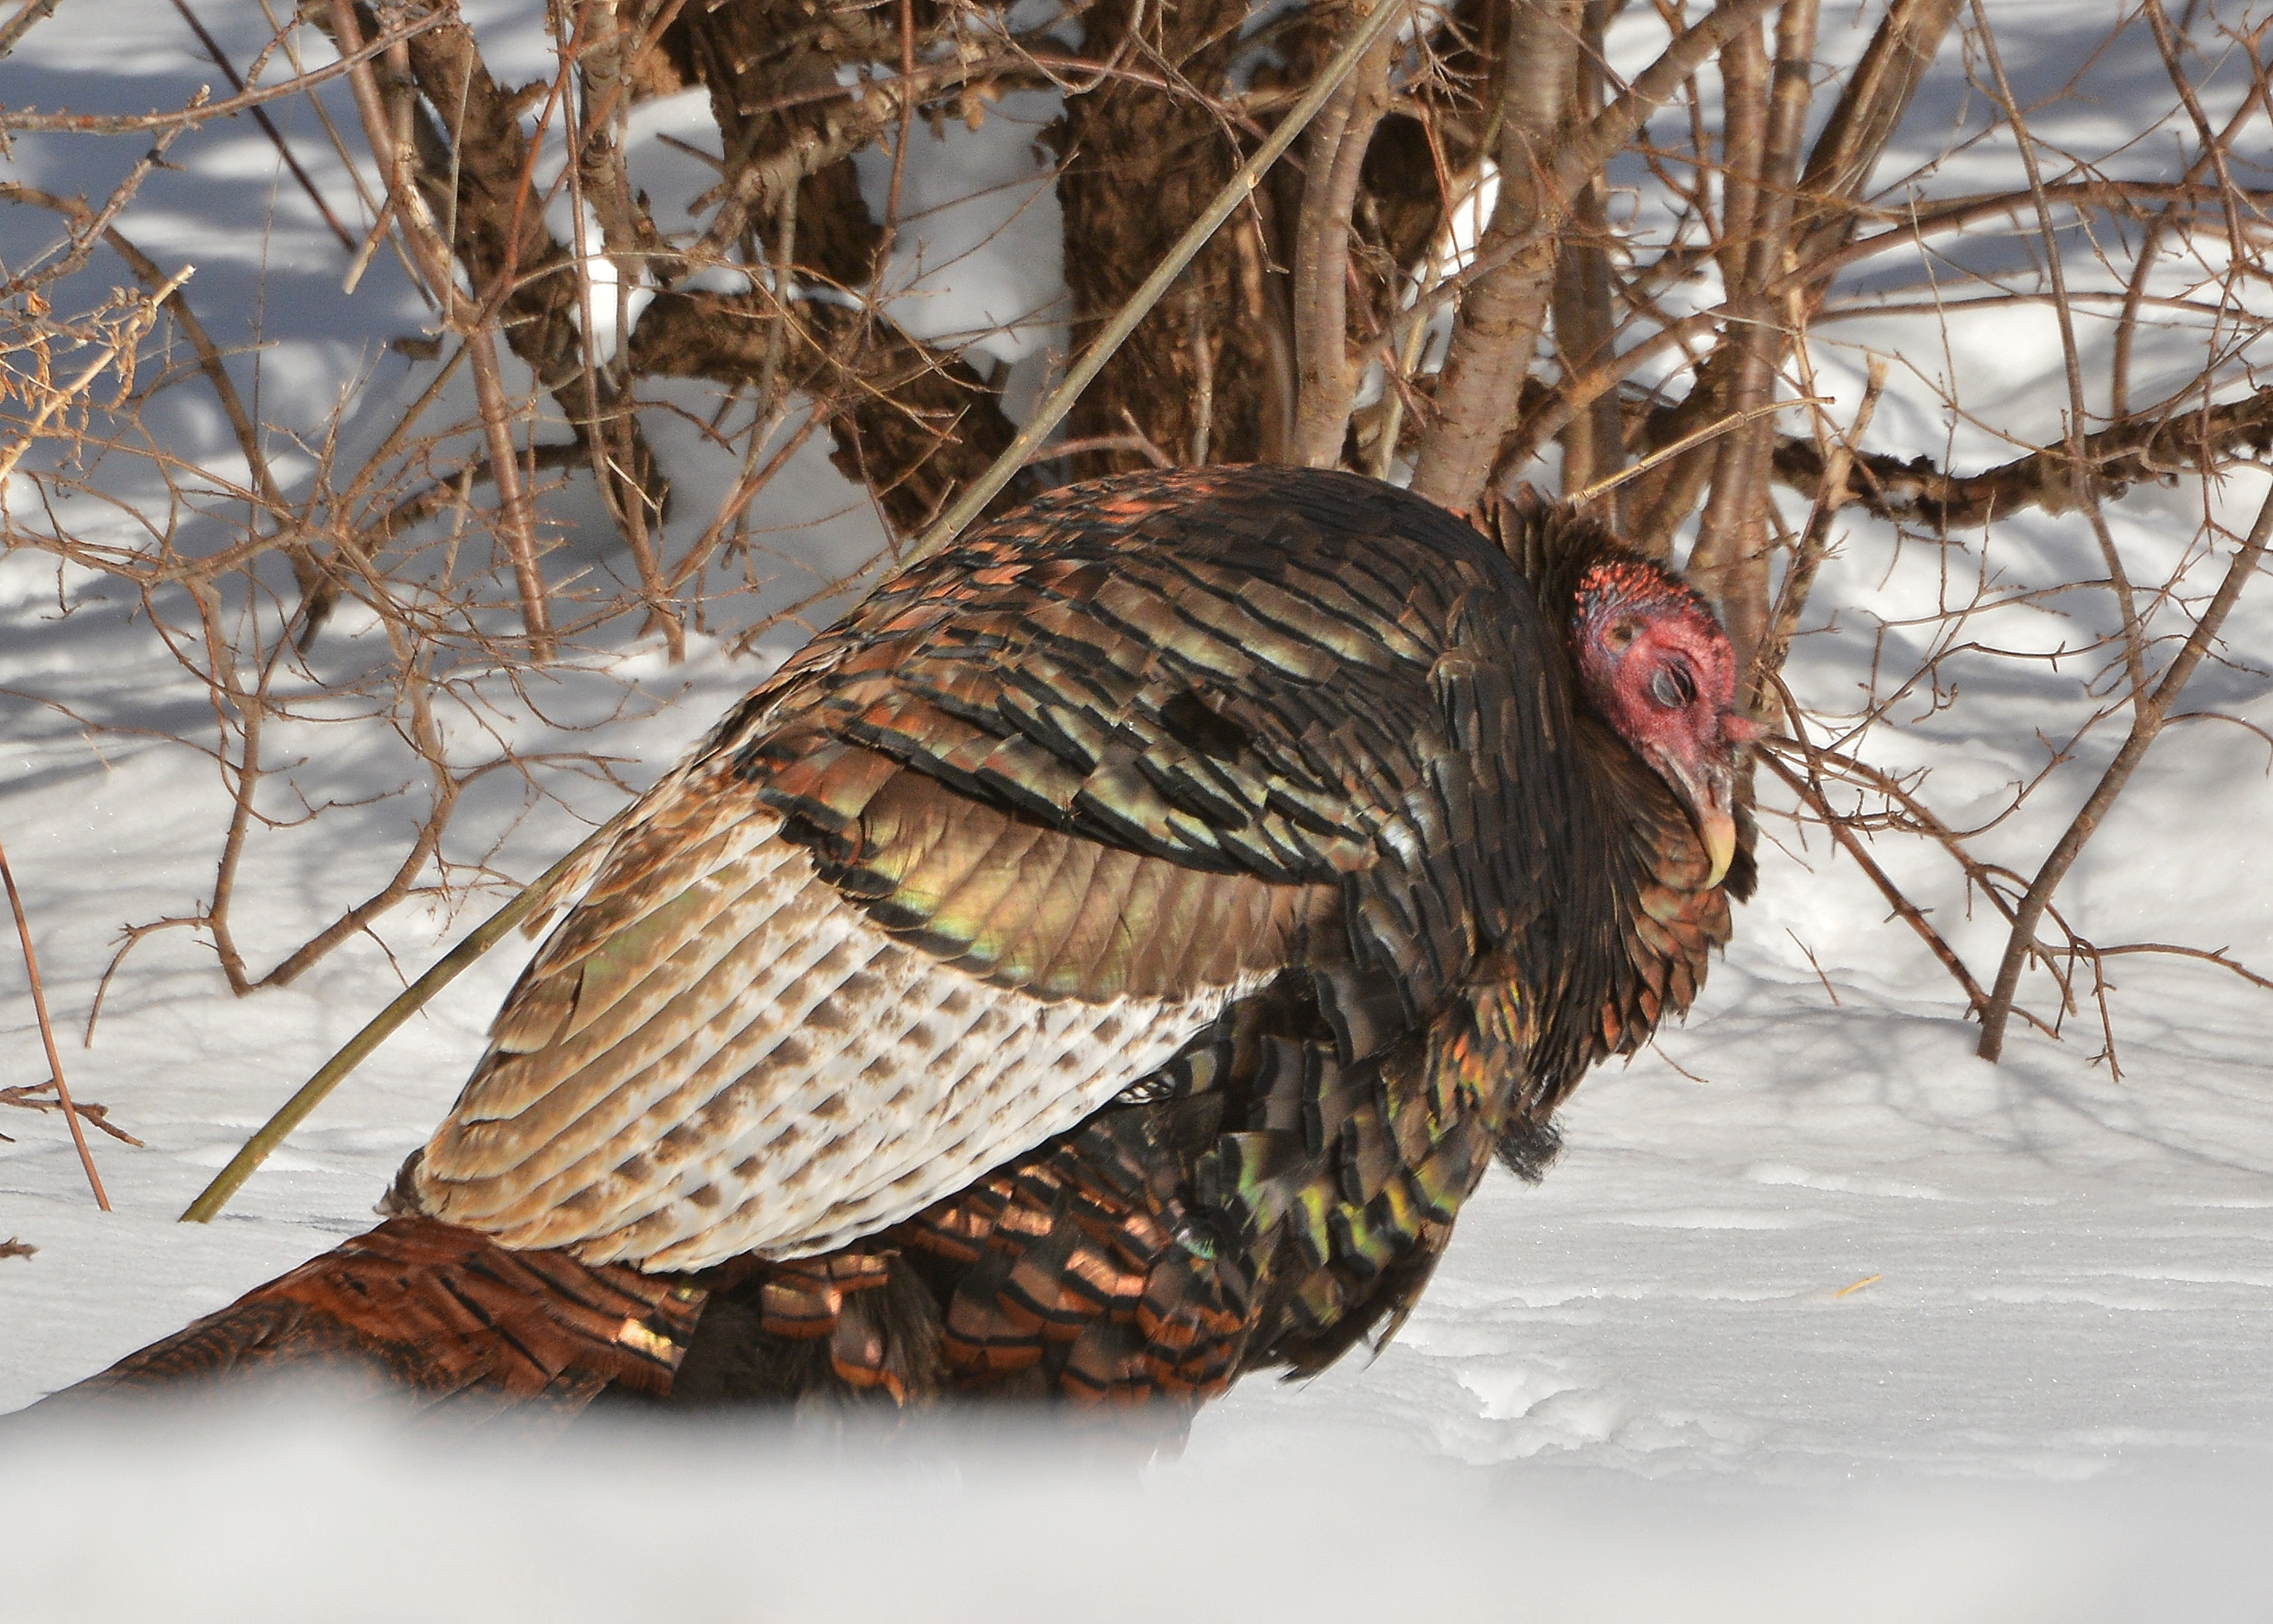 wild turkeys in deep snow nick 39 s nature pics. Black Bedroom Furniture Sets. Home Design Ideas